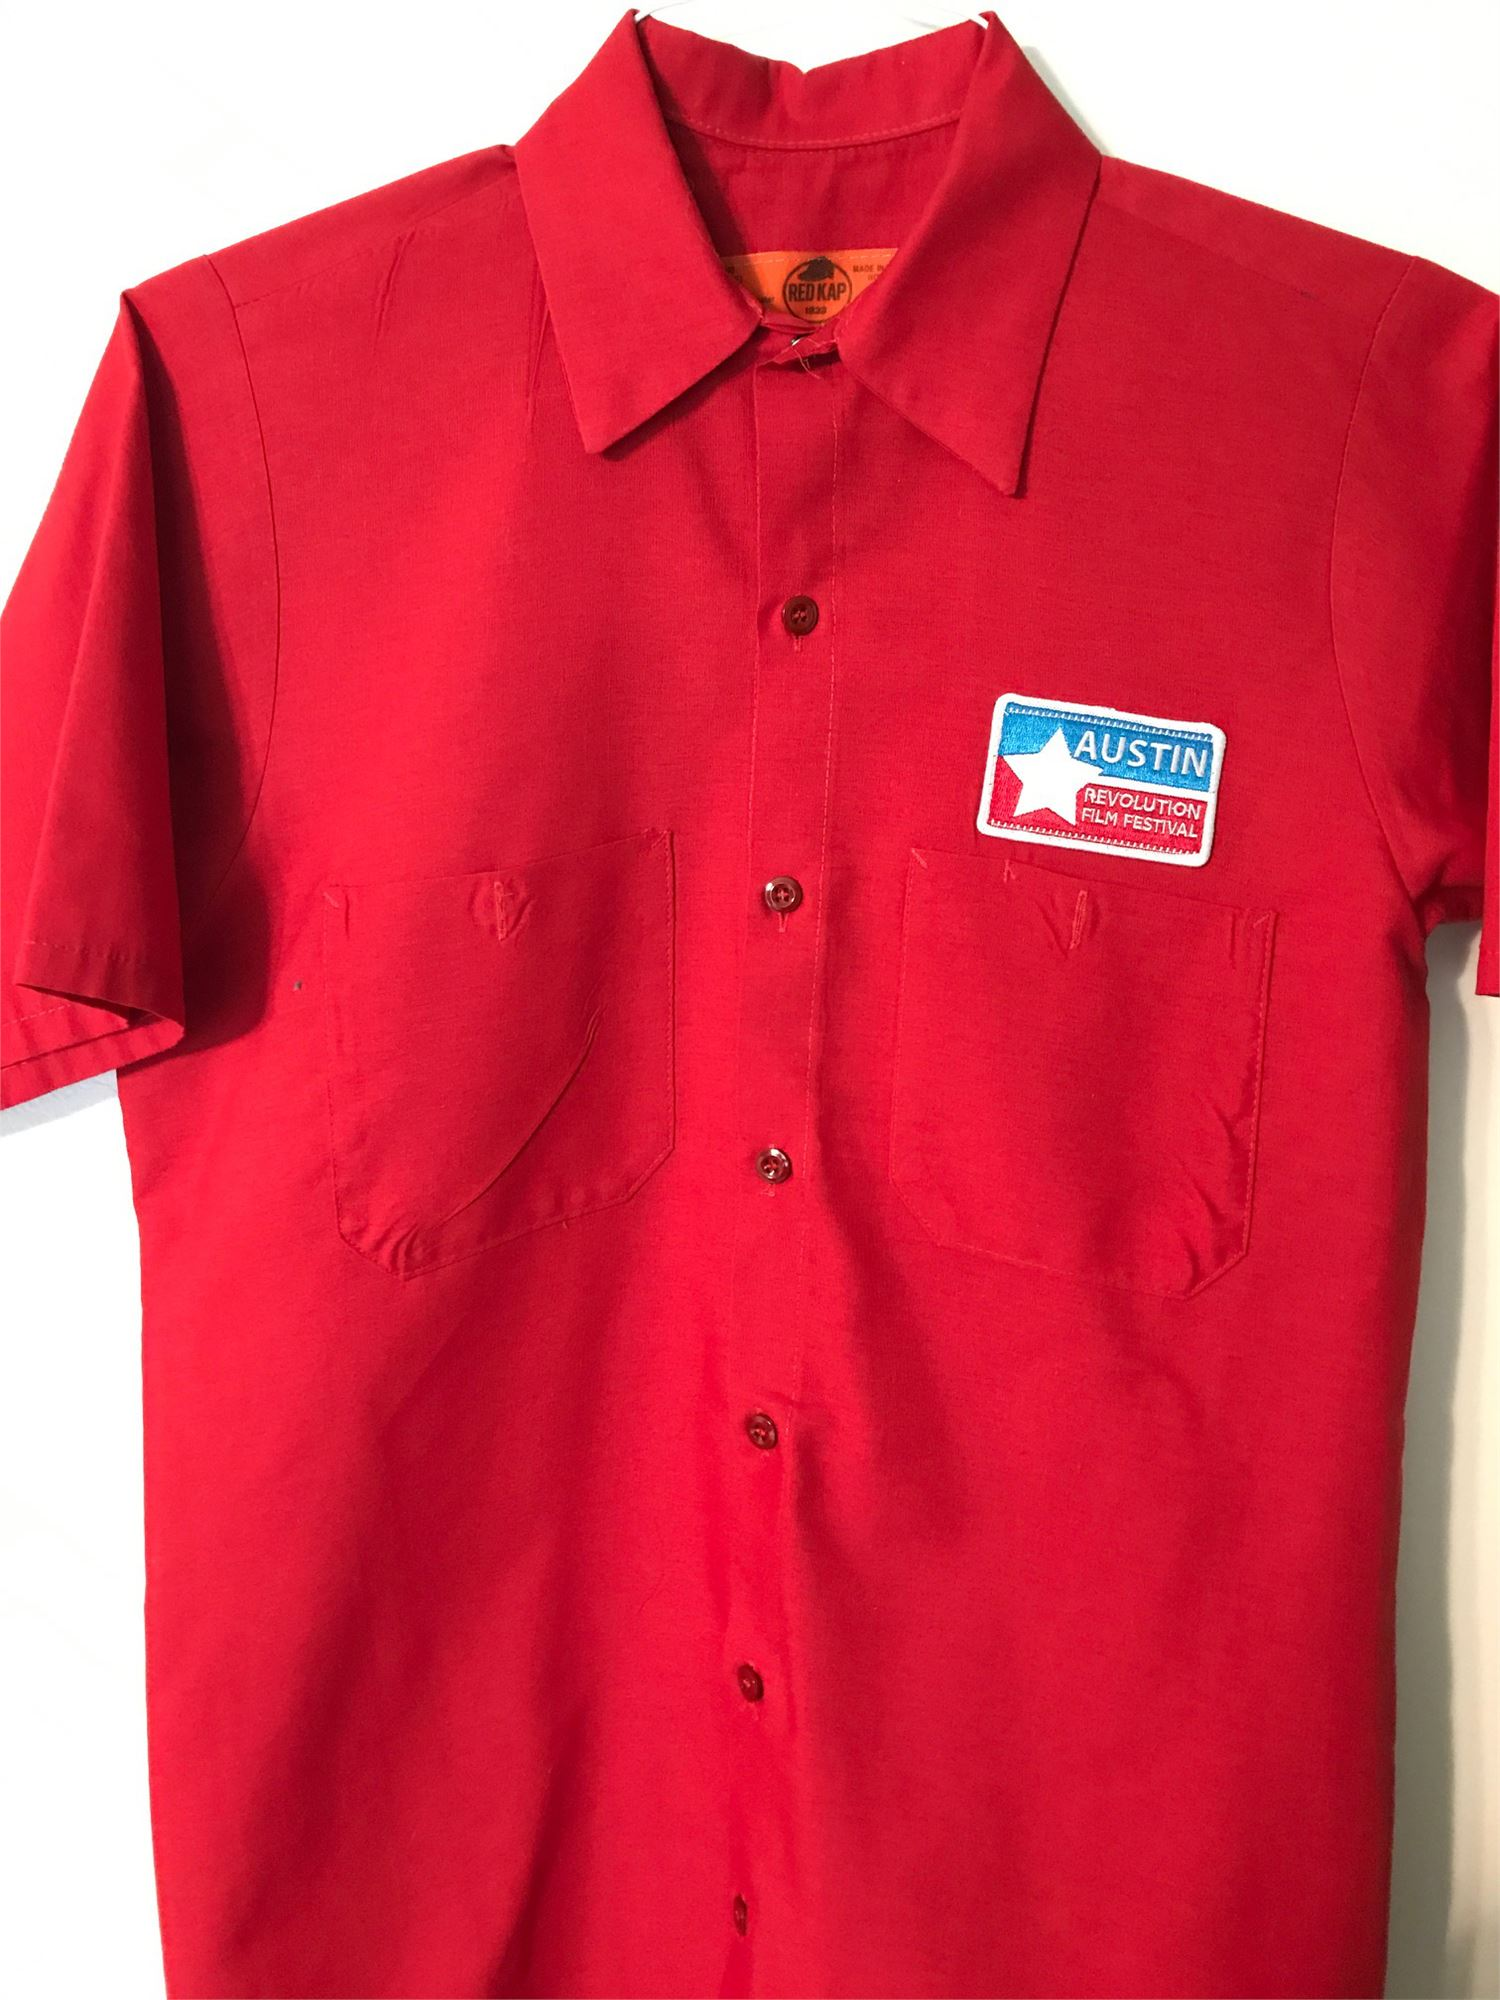 ARFF Work Shirt - Red